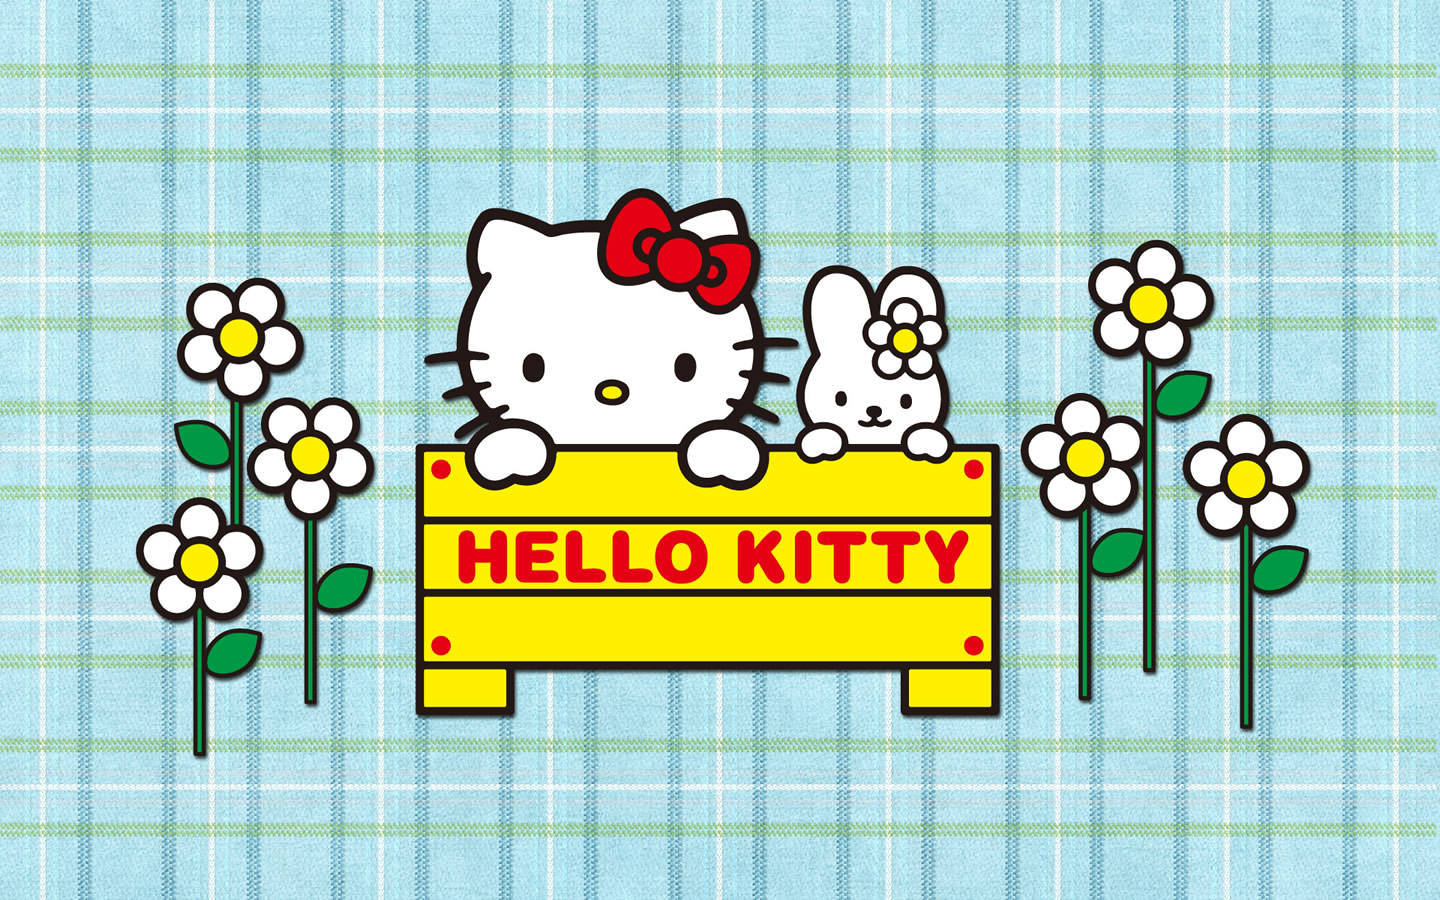 Hellokitty Wallpaper 1440x900